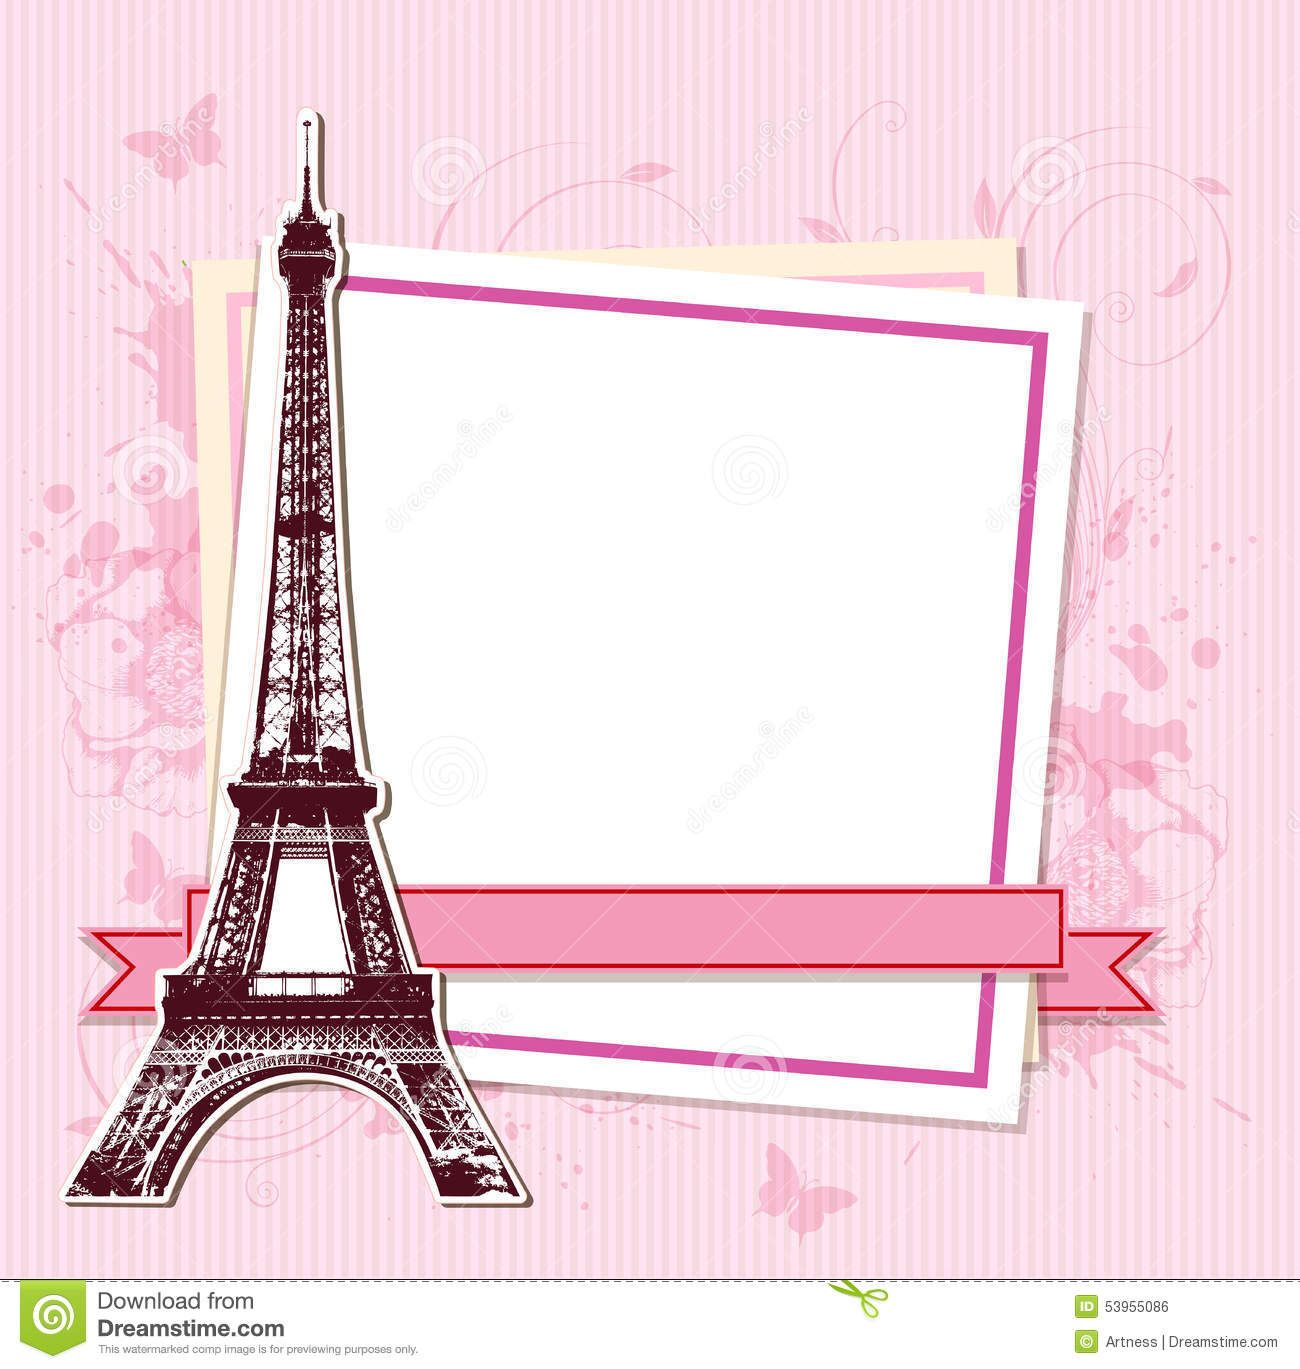 Coco Chanel Wall Stickers White Frame Paris Eiffel Tower Pink Background 53955086